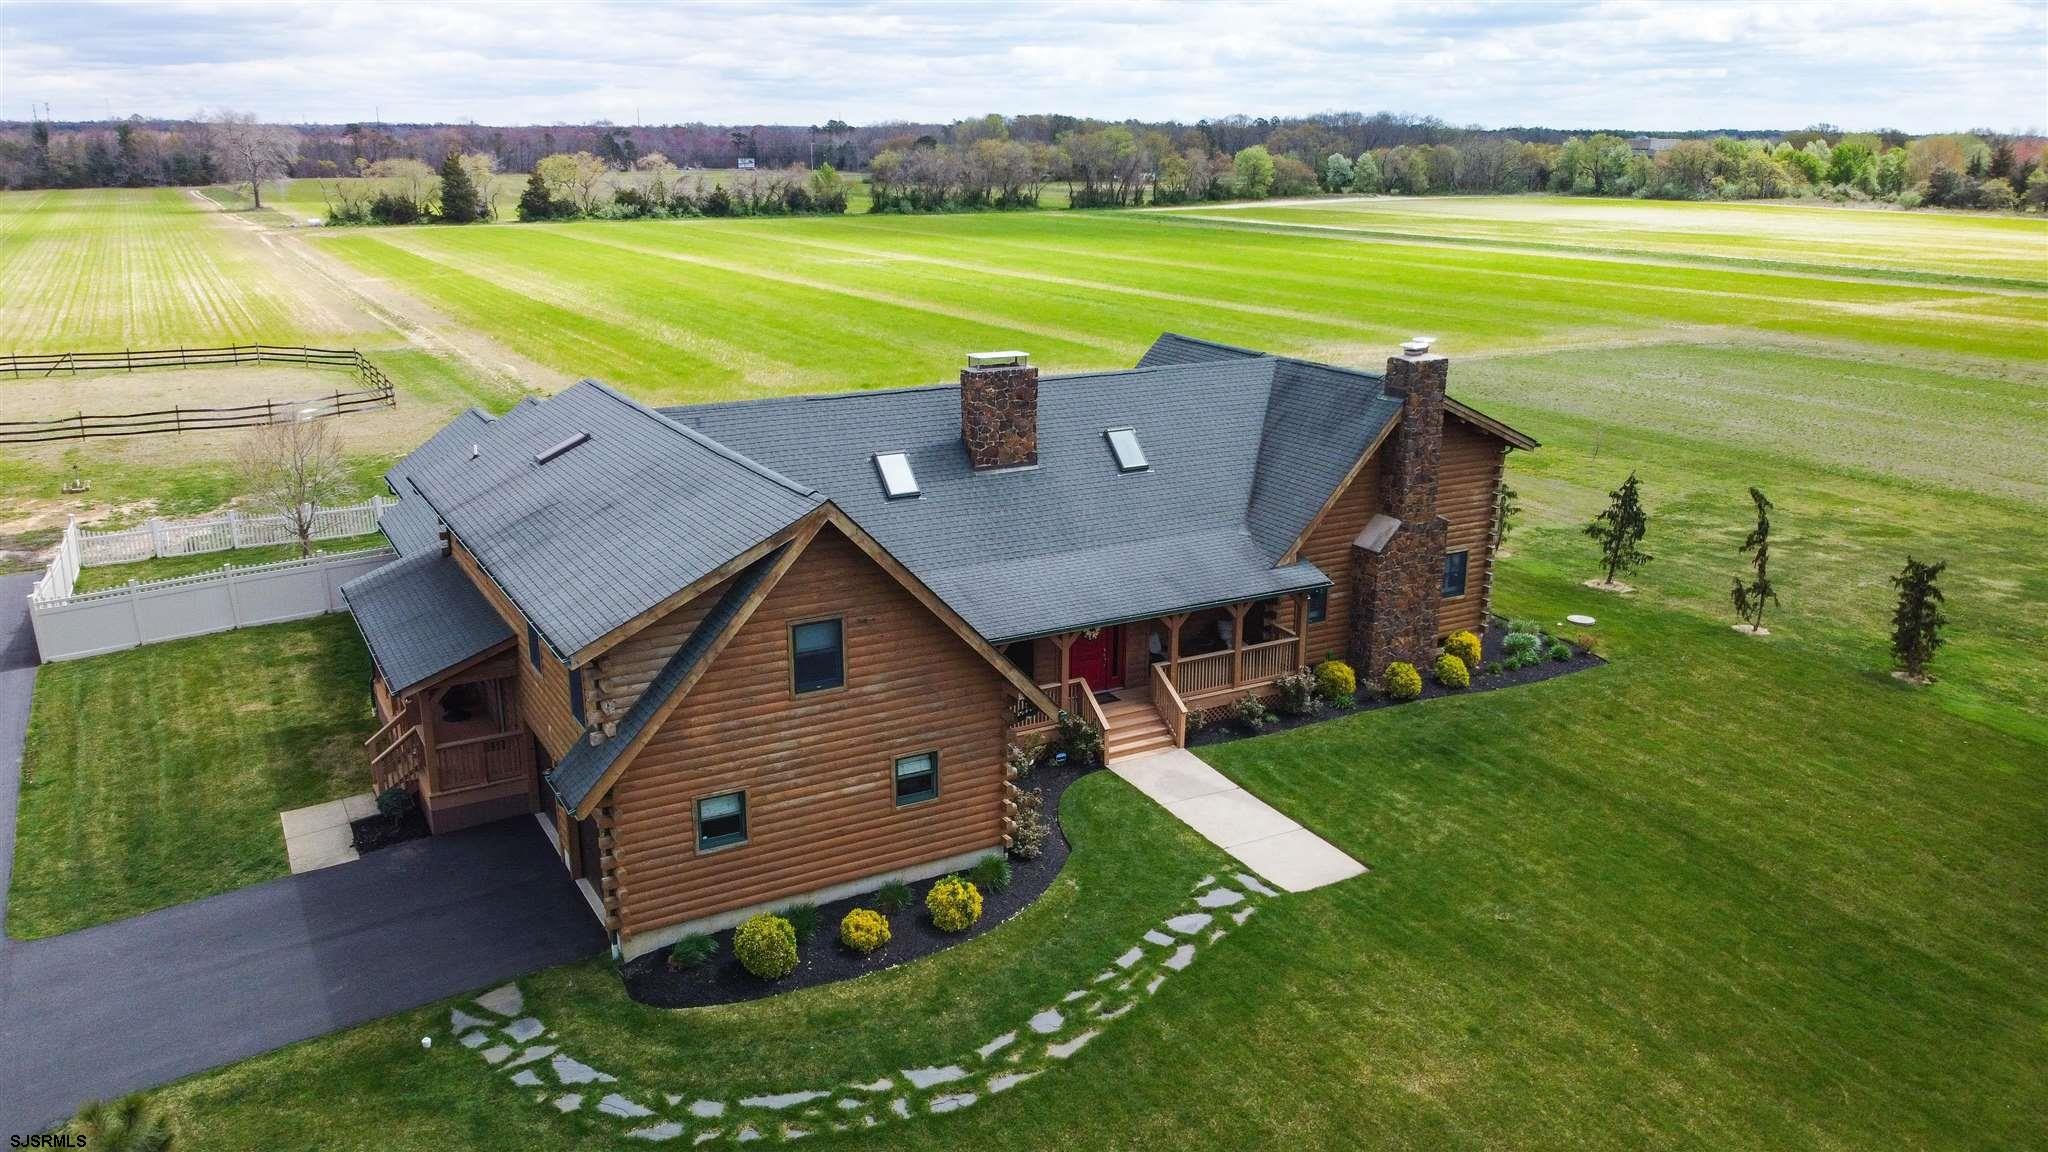 Welcome to this stunning, palatial estate with everything you could ask for! The home is a 4500 sq f